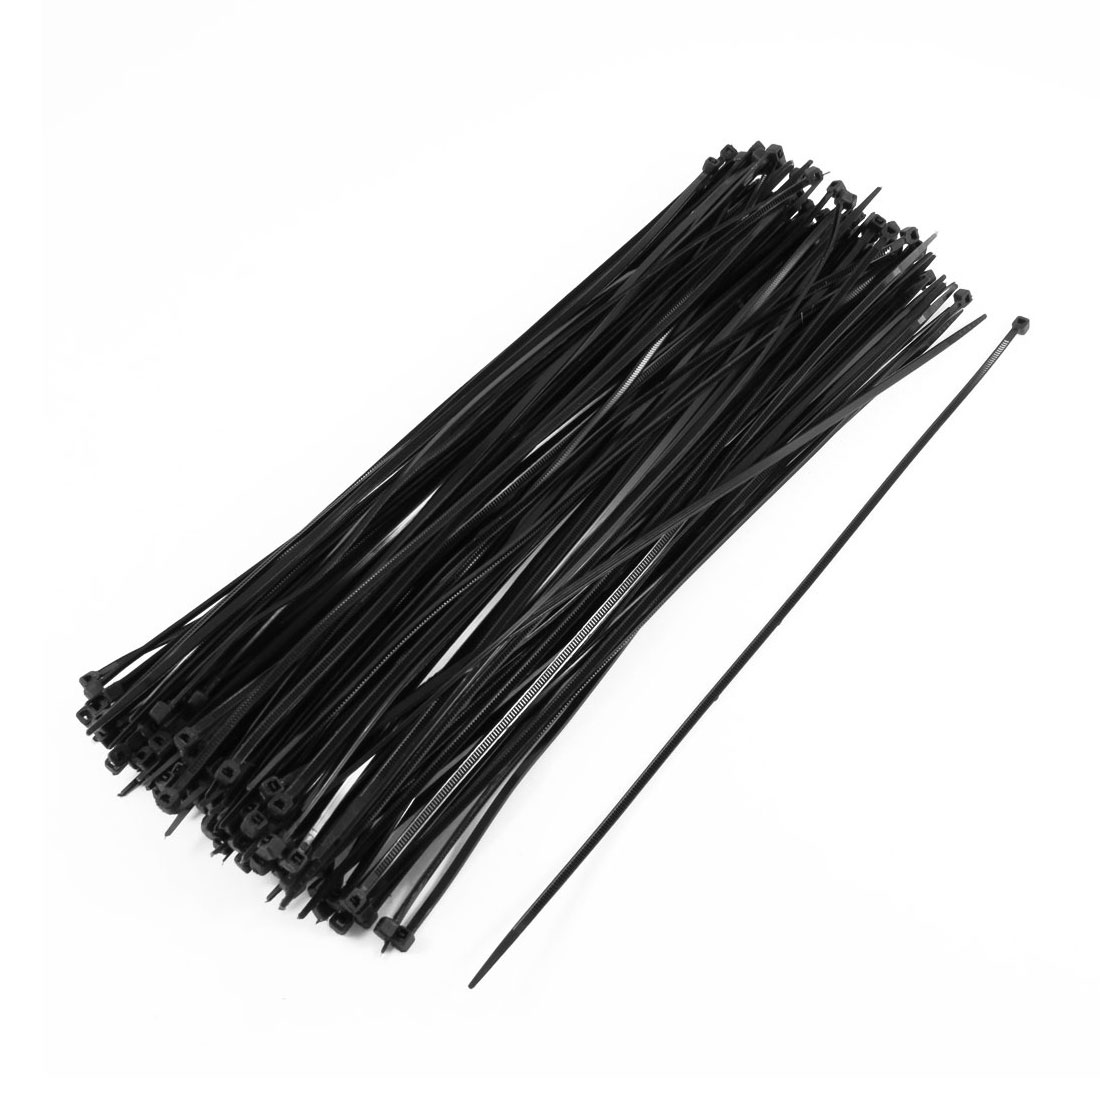 175 Pcs 4mmx300mm Plastic Power Cable Wire Cord Zip Ties Straps Black